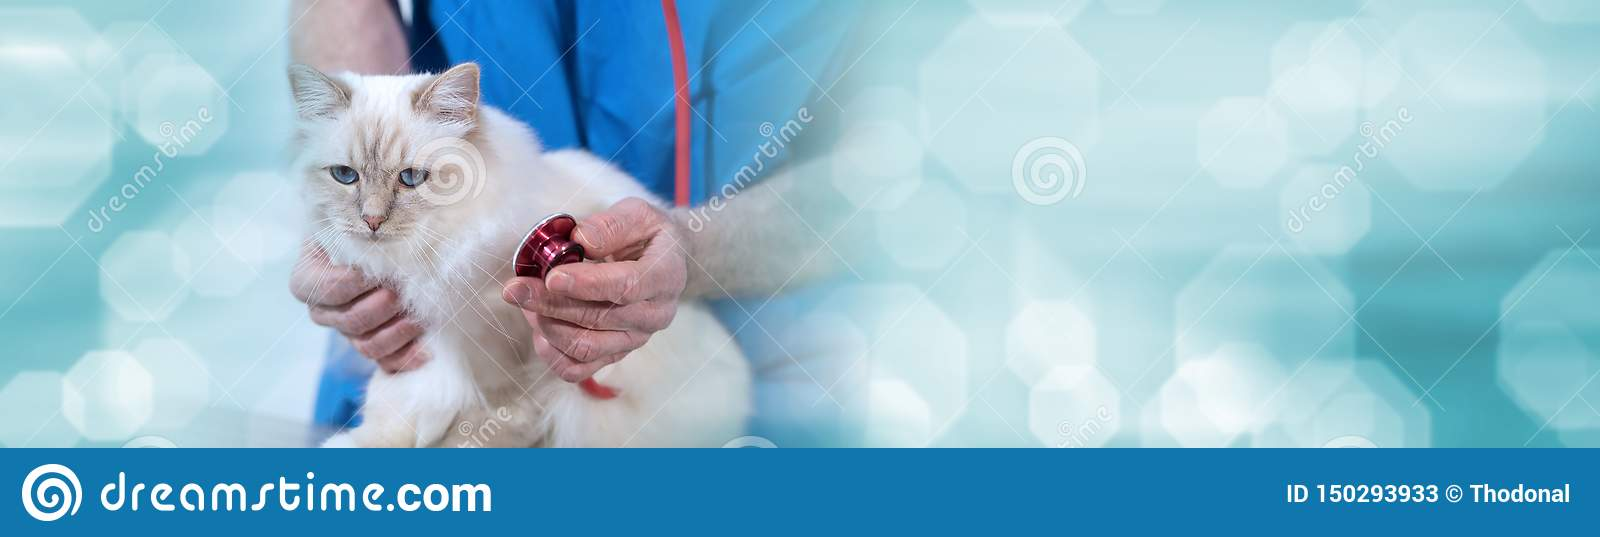 Veterinarian examining a sacred cat of burma with his stethoscope; panoramic banner